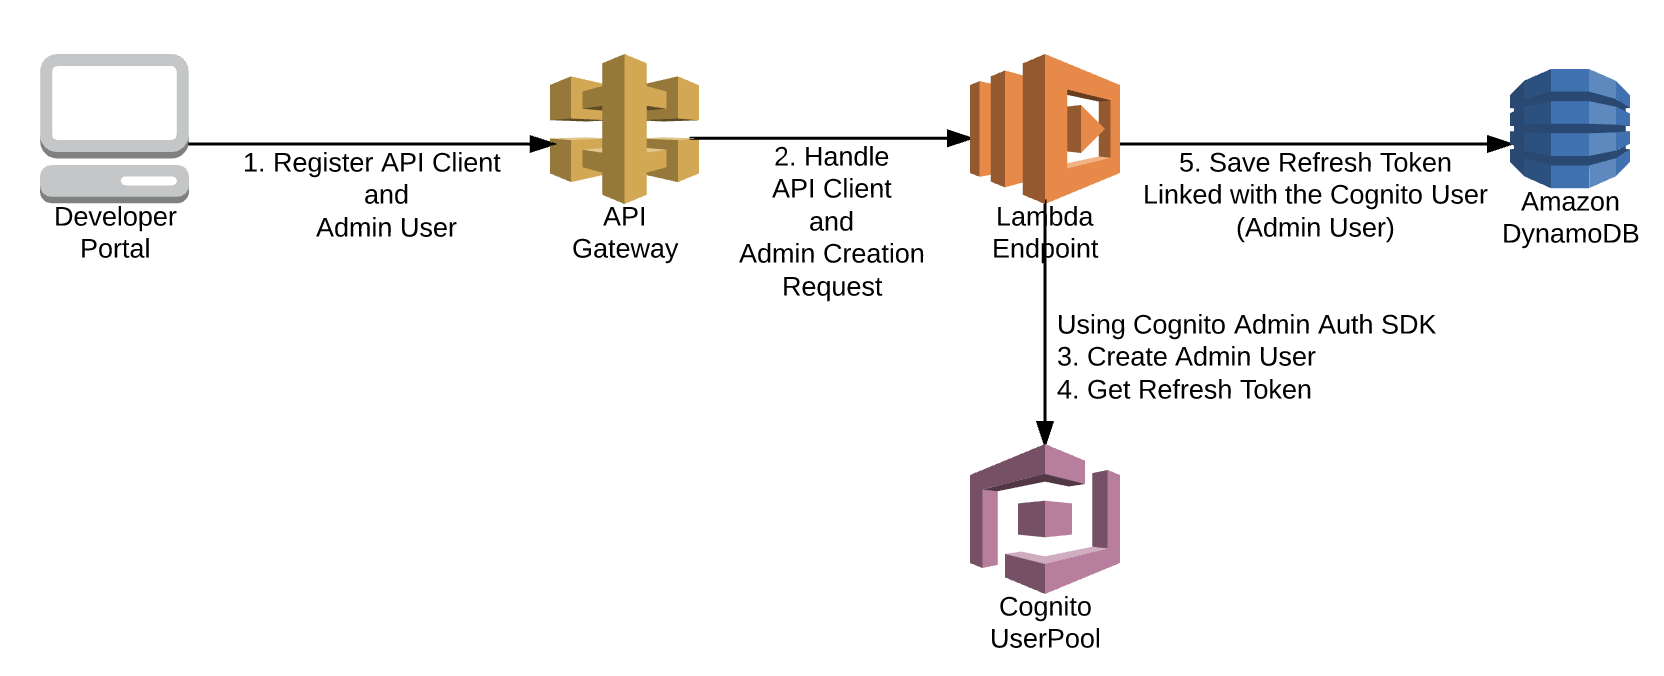 B2B Authentication Solution for APIs using AWS Cognito UserPools